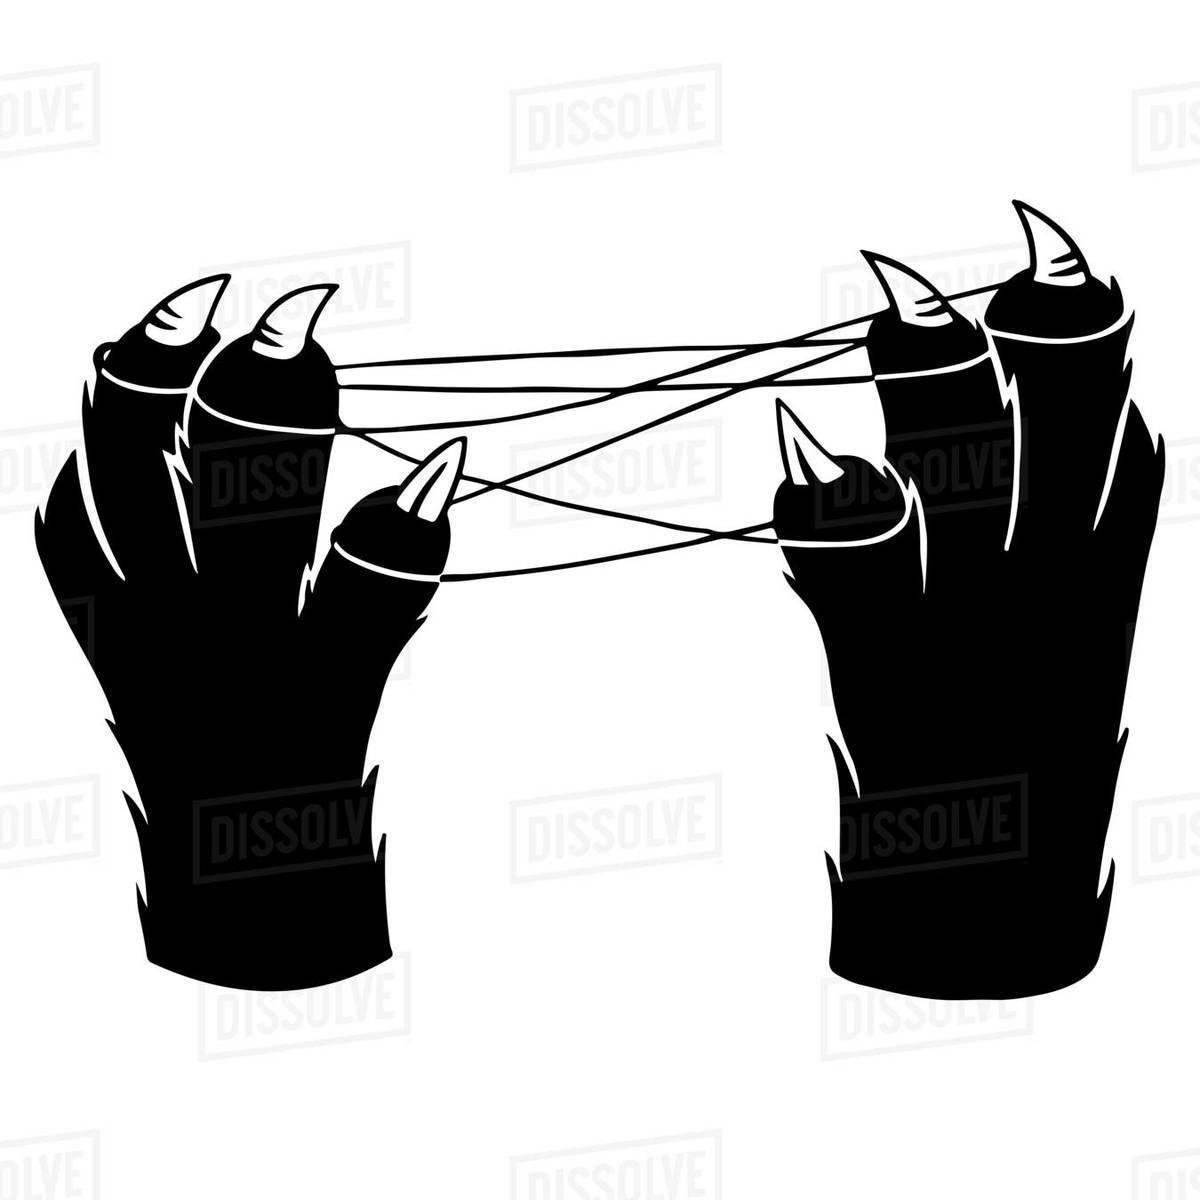 Illustration of a cat's paws playing cat's cradle against white background Royalty-free stock photo